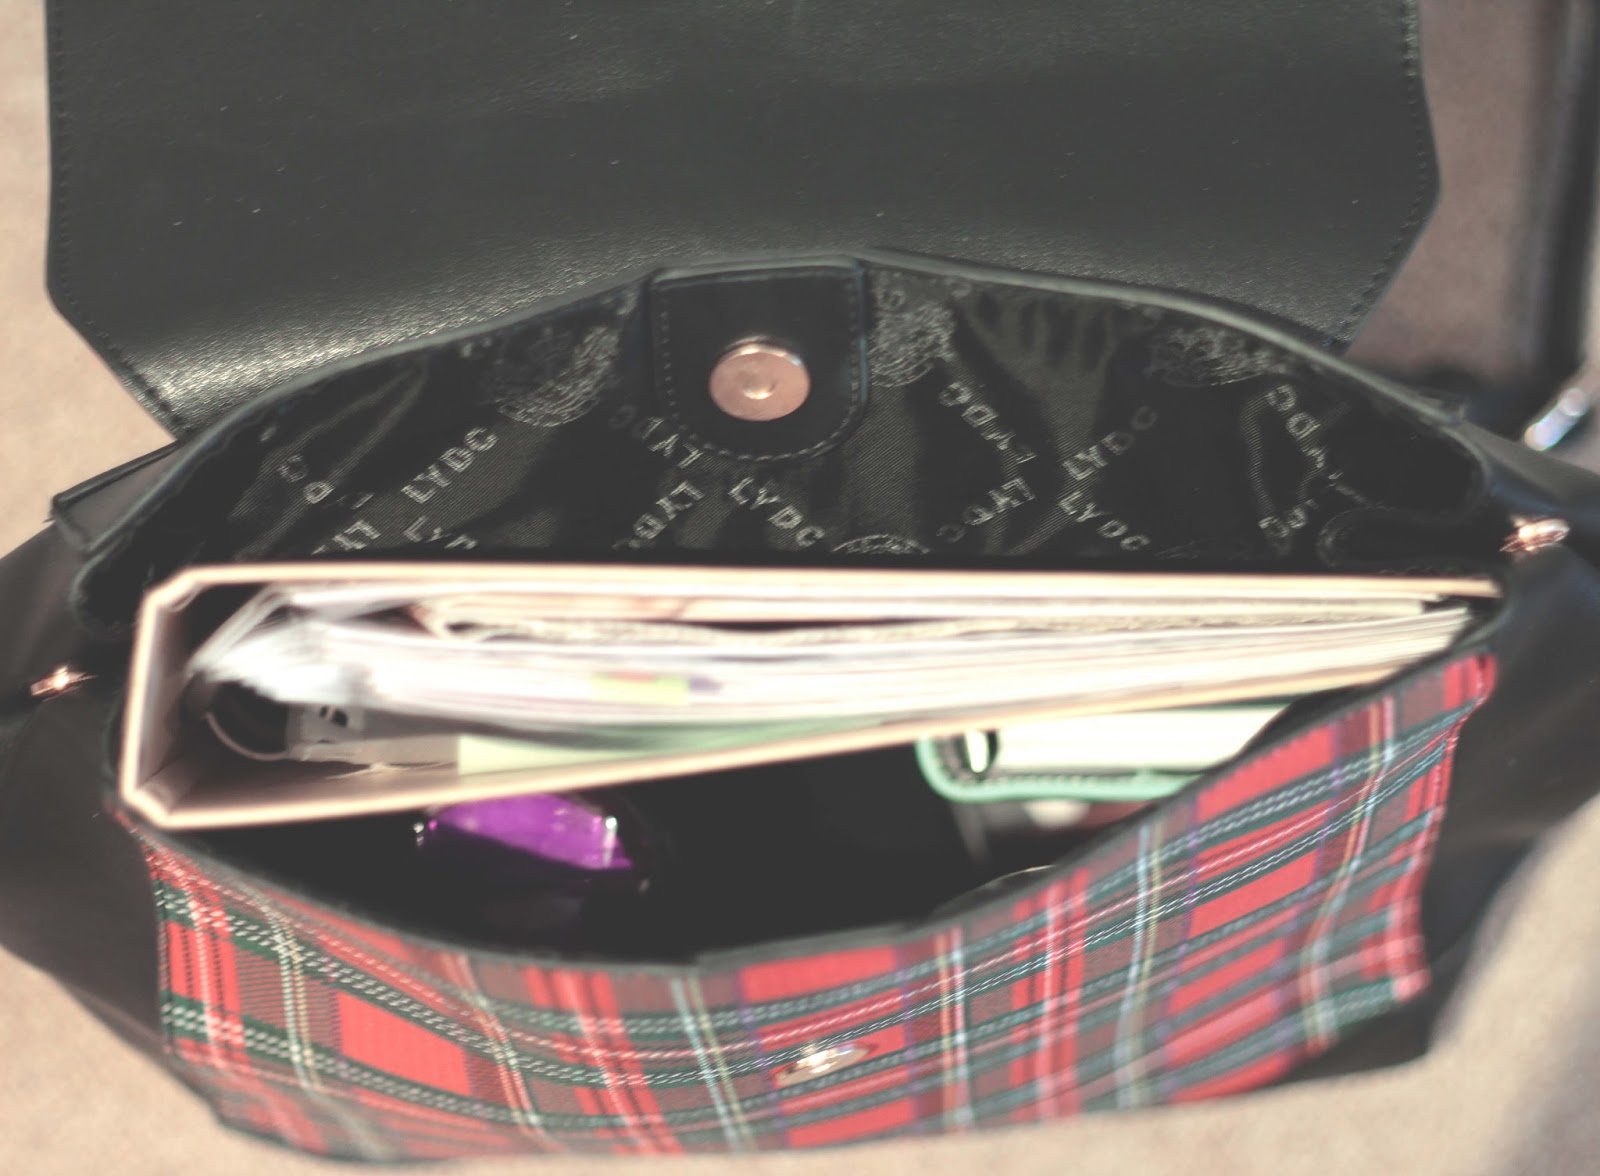 LYDC tartan backpack review inside view